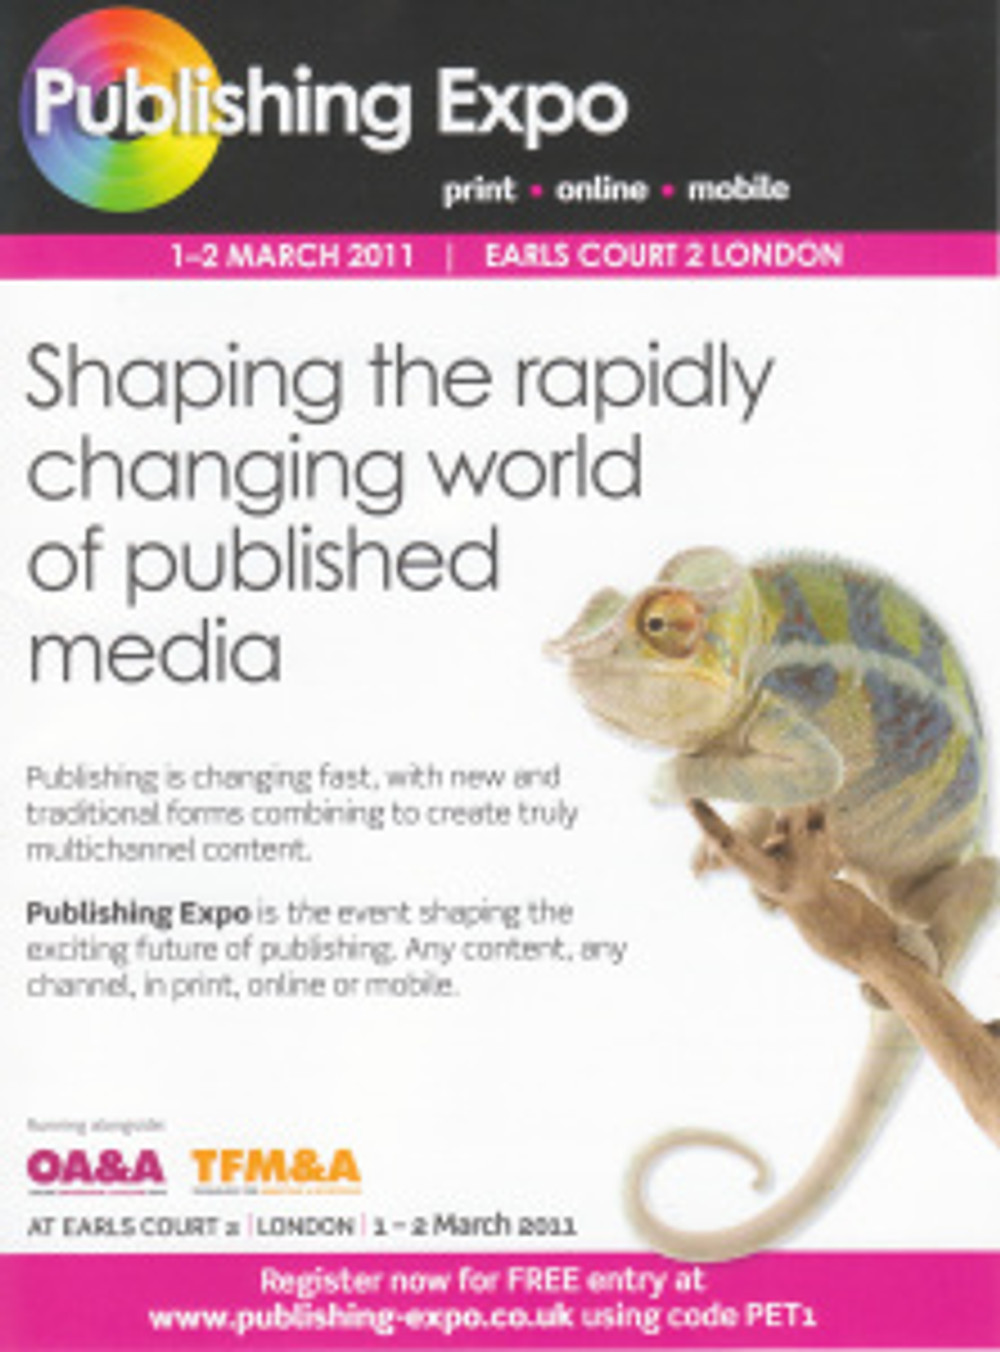 Publishing Expo poster